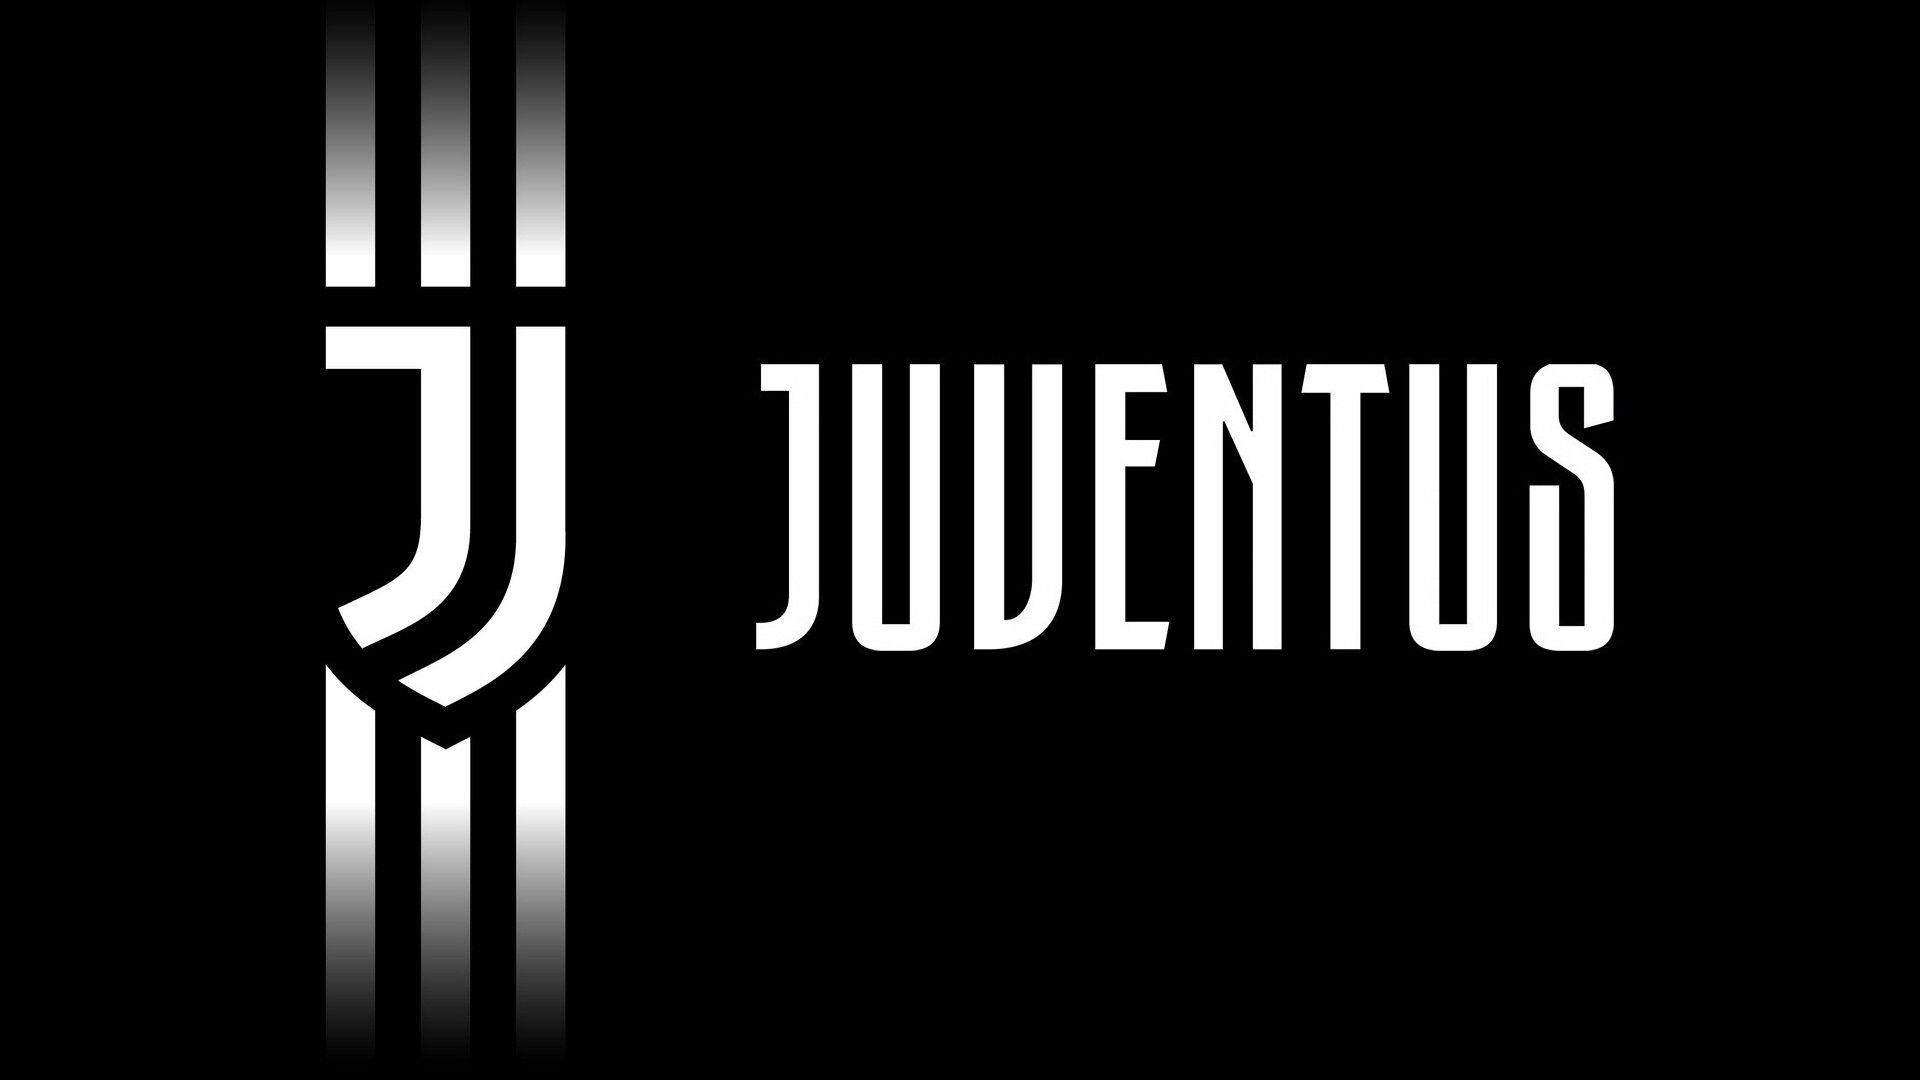 BEST WALLPAPER Juventus Wallpaper Pc